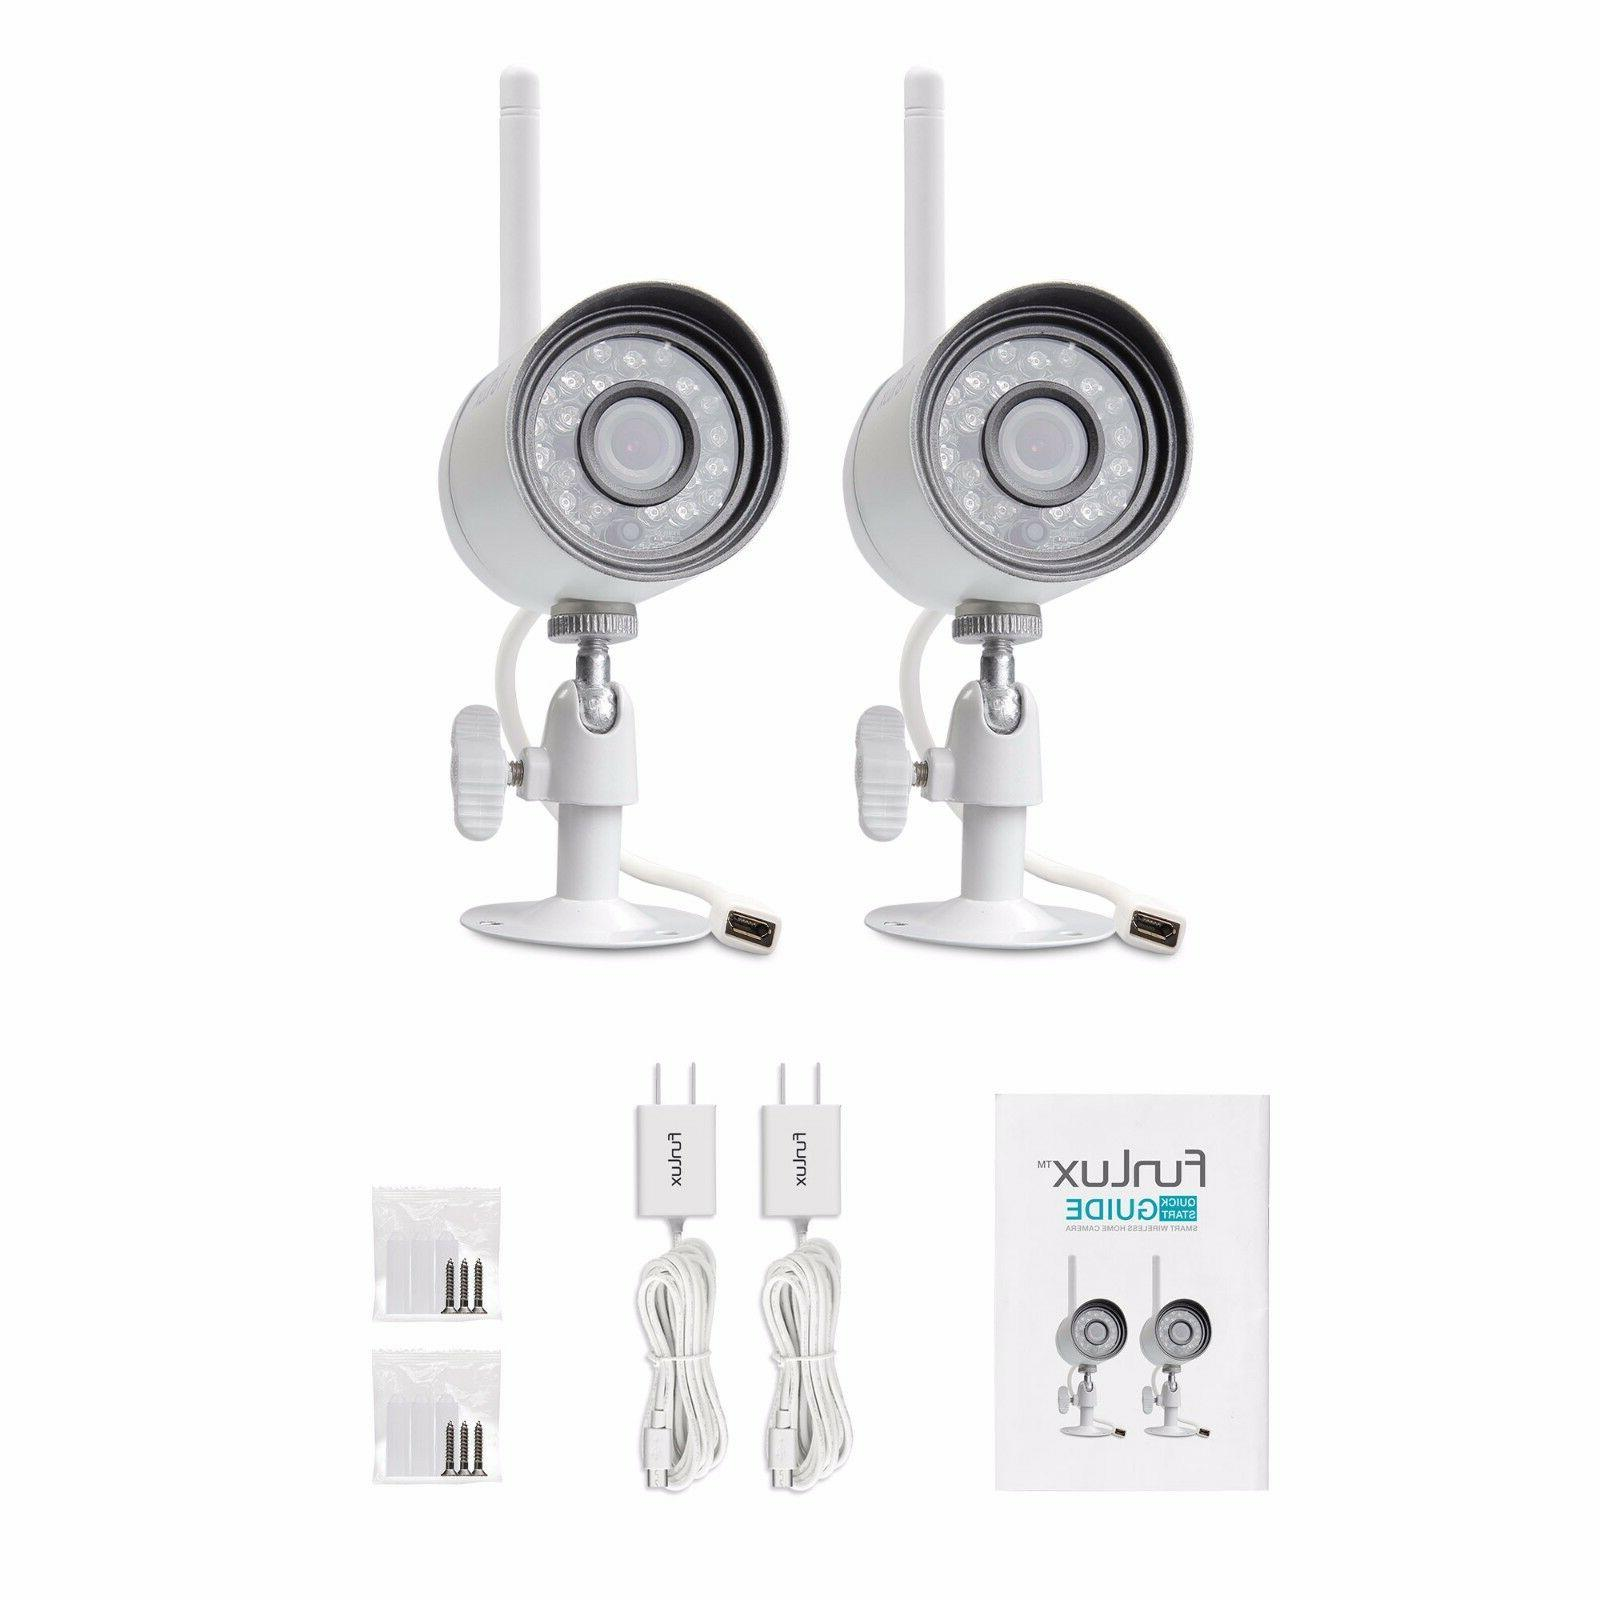 Funlux 1280*720p IP Network Wireless Home Security Camera